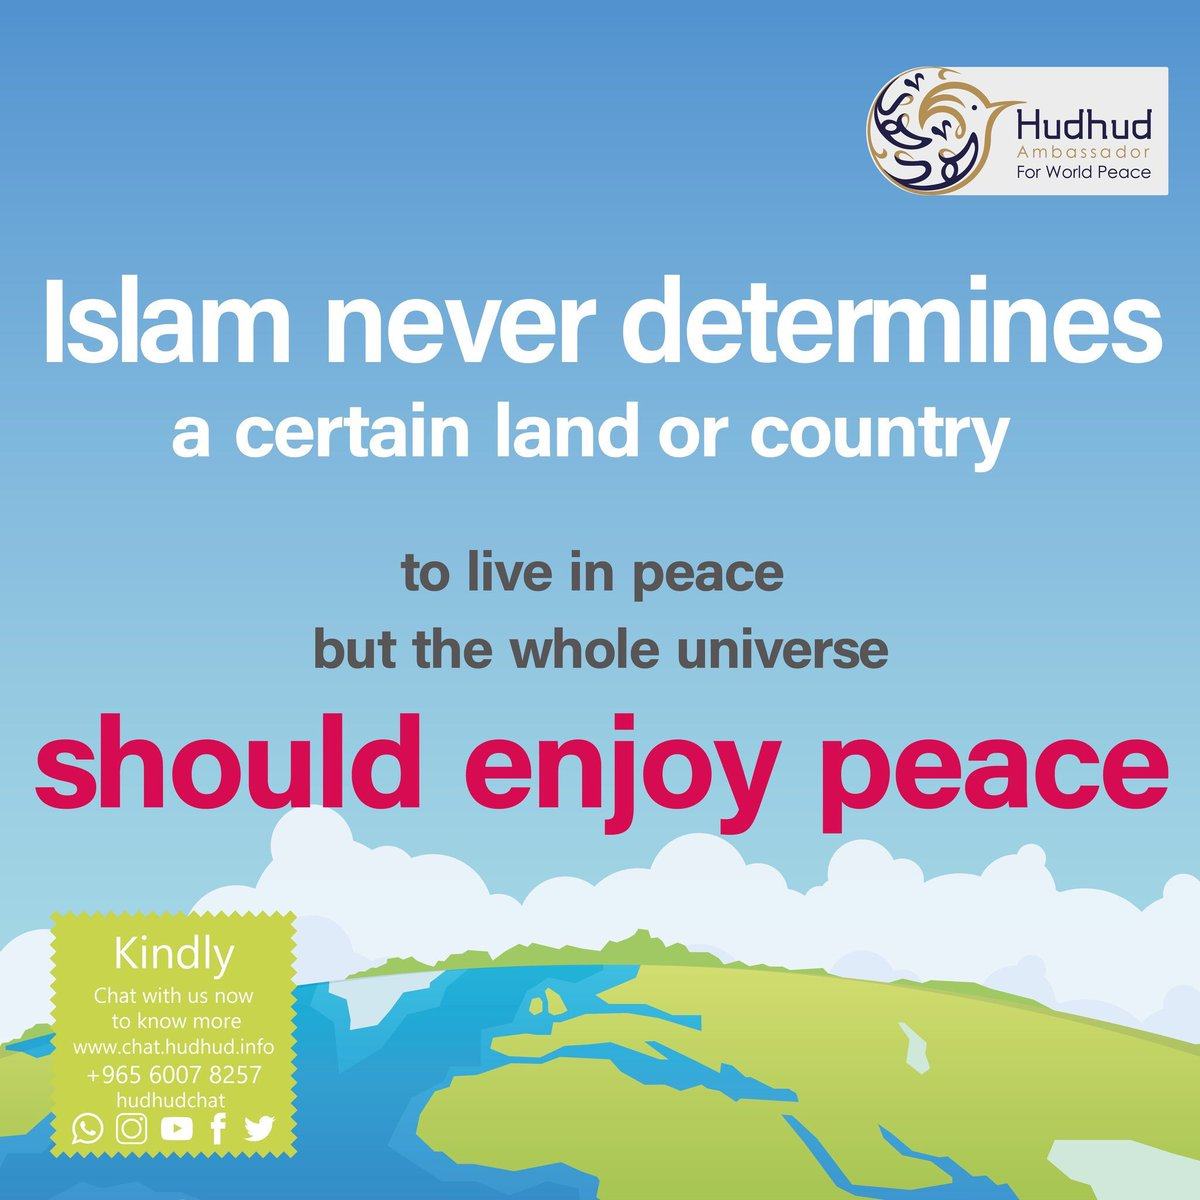 #Islam never determines a certain land or #country to #live in #peace; but the whole #universe should enjoy peace.  Chat with us now to know more:  http:// chat.hudhud.info      #IslamIsPeace #Hudhudchat #MondayMotivation #BC #aircanada<br>http://pic.twitter.com/0XRqX3SE70